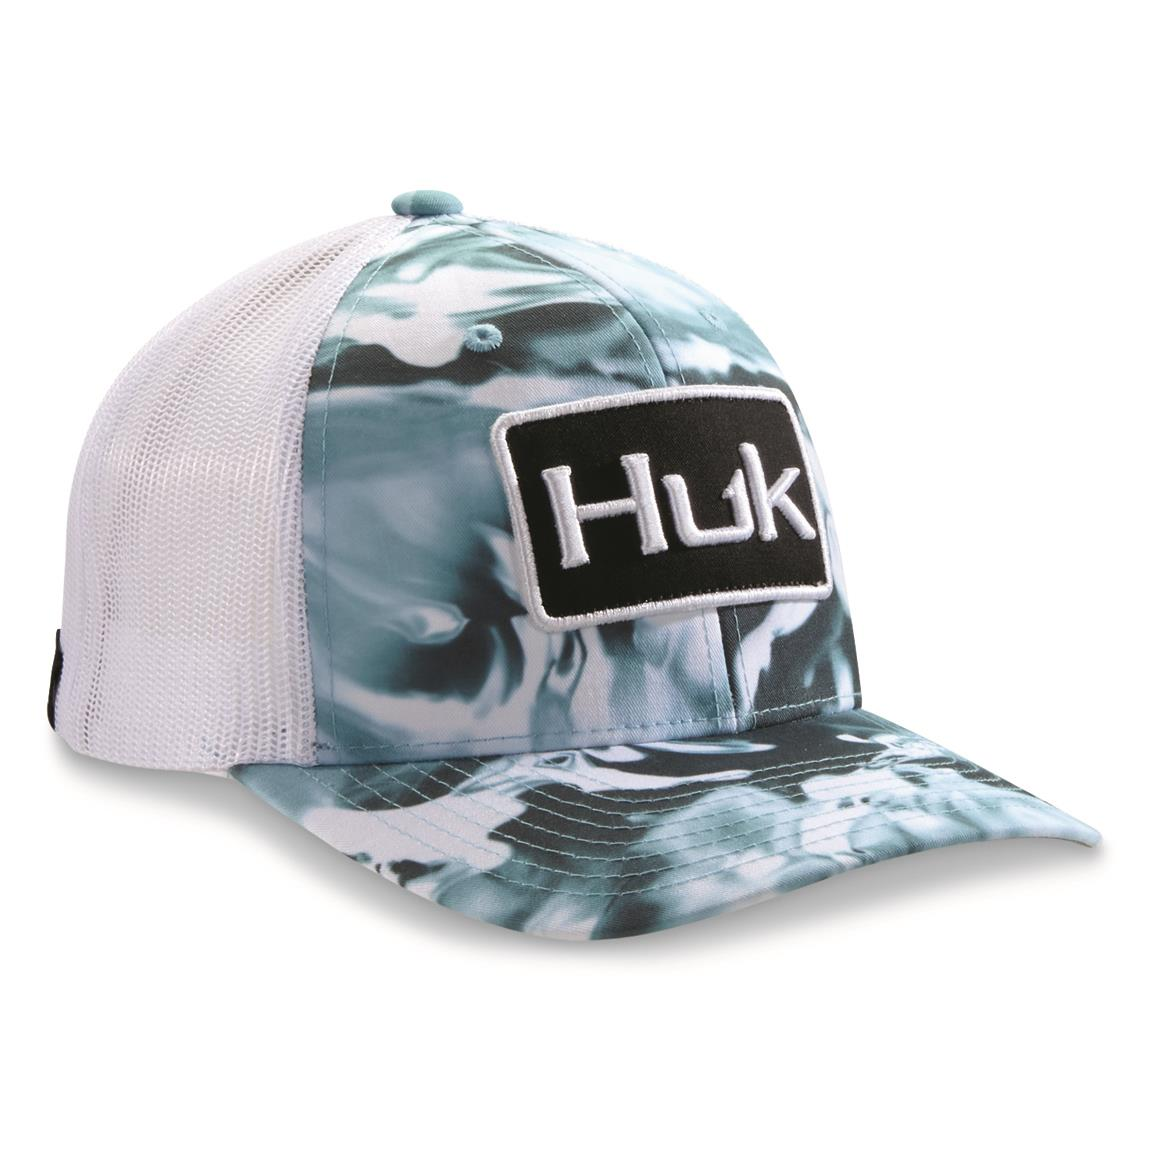 Huk Men's Huk'd Up Mossy Oak Angler Cap, Mossy Oak Elements Hydro Wahoo